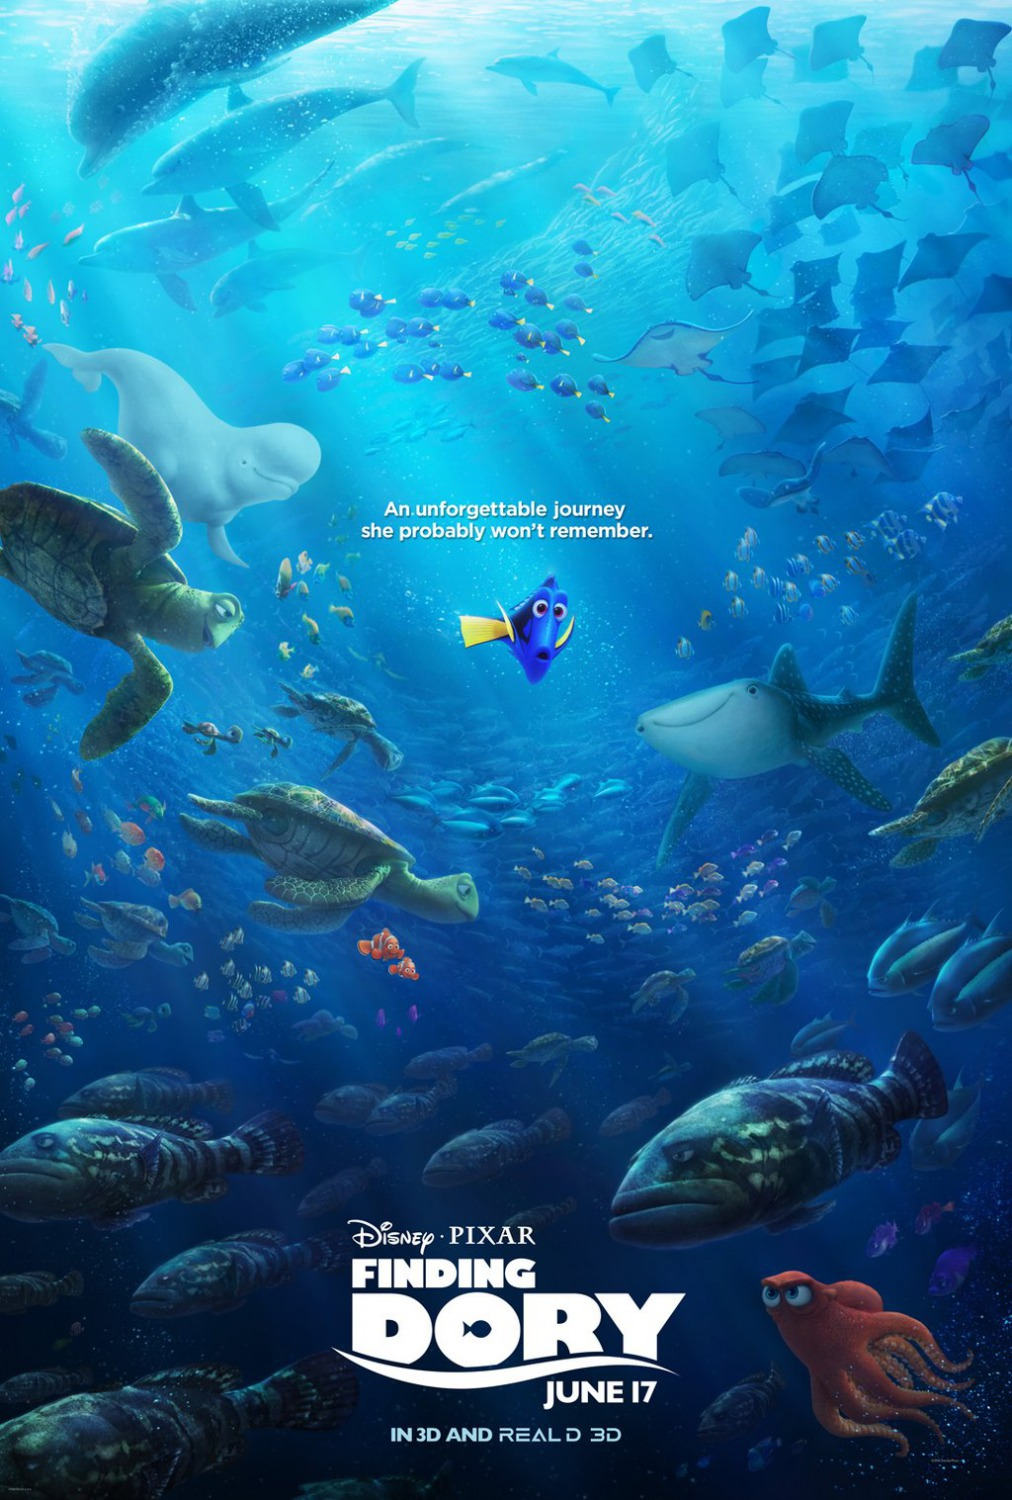 10 - Finding Dory